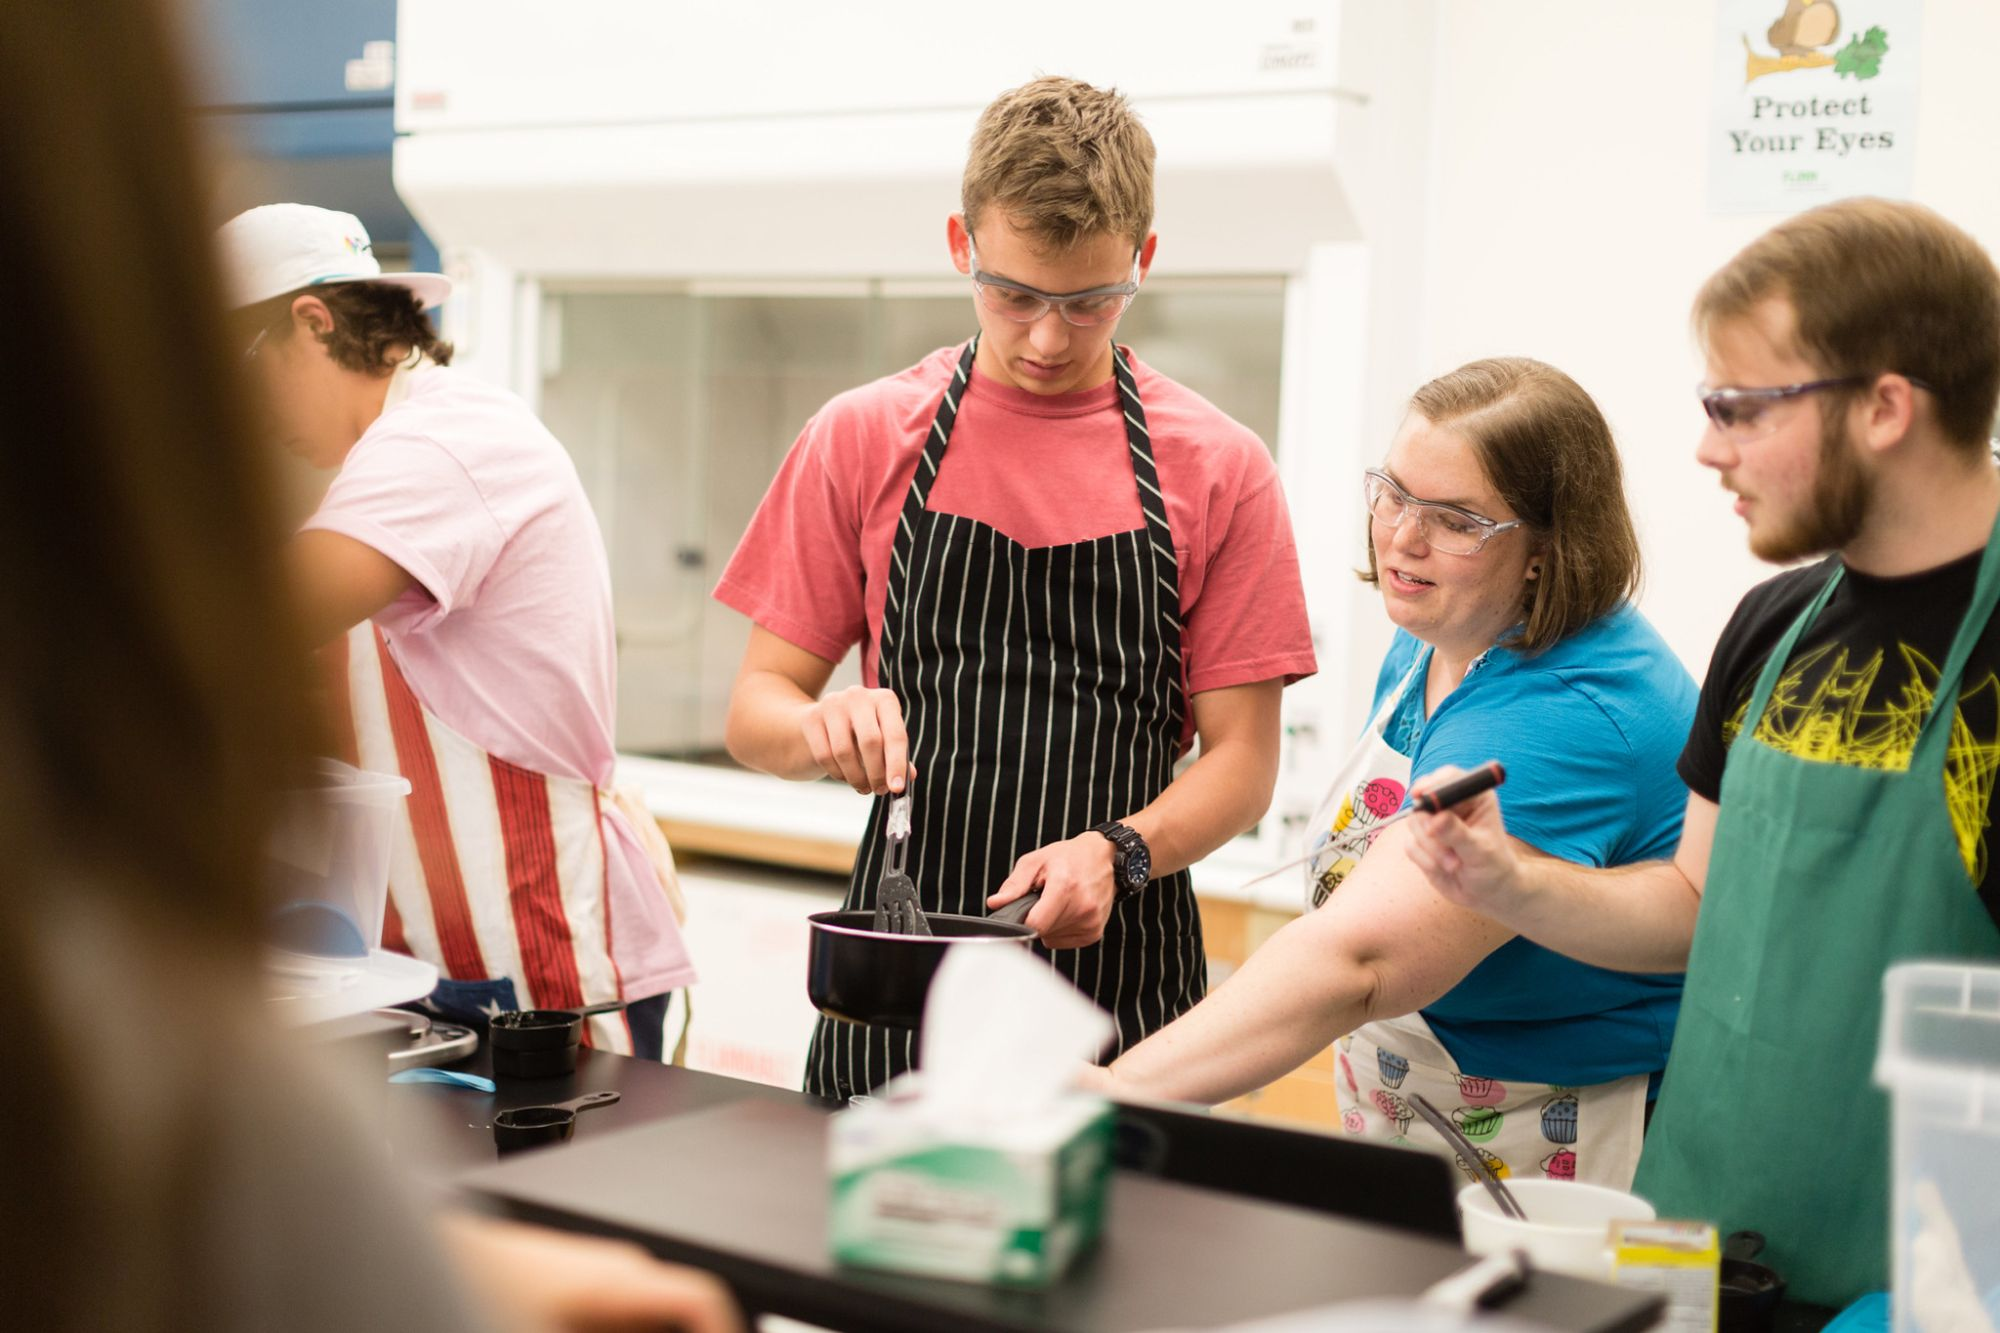 Students prepare gelatin during a chemistry experiment.